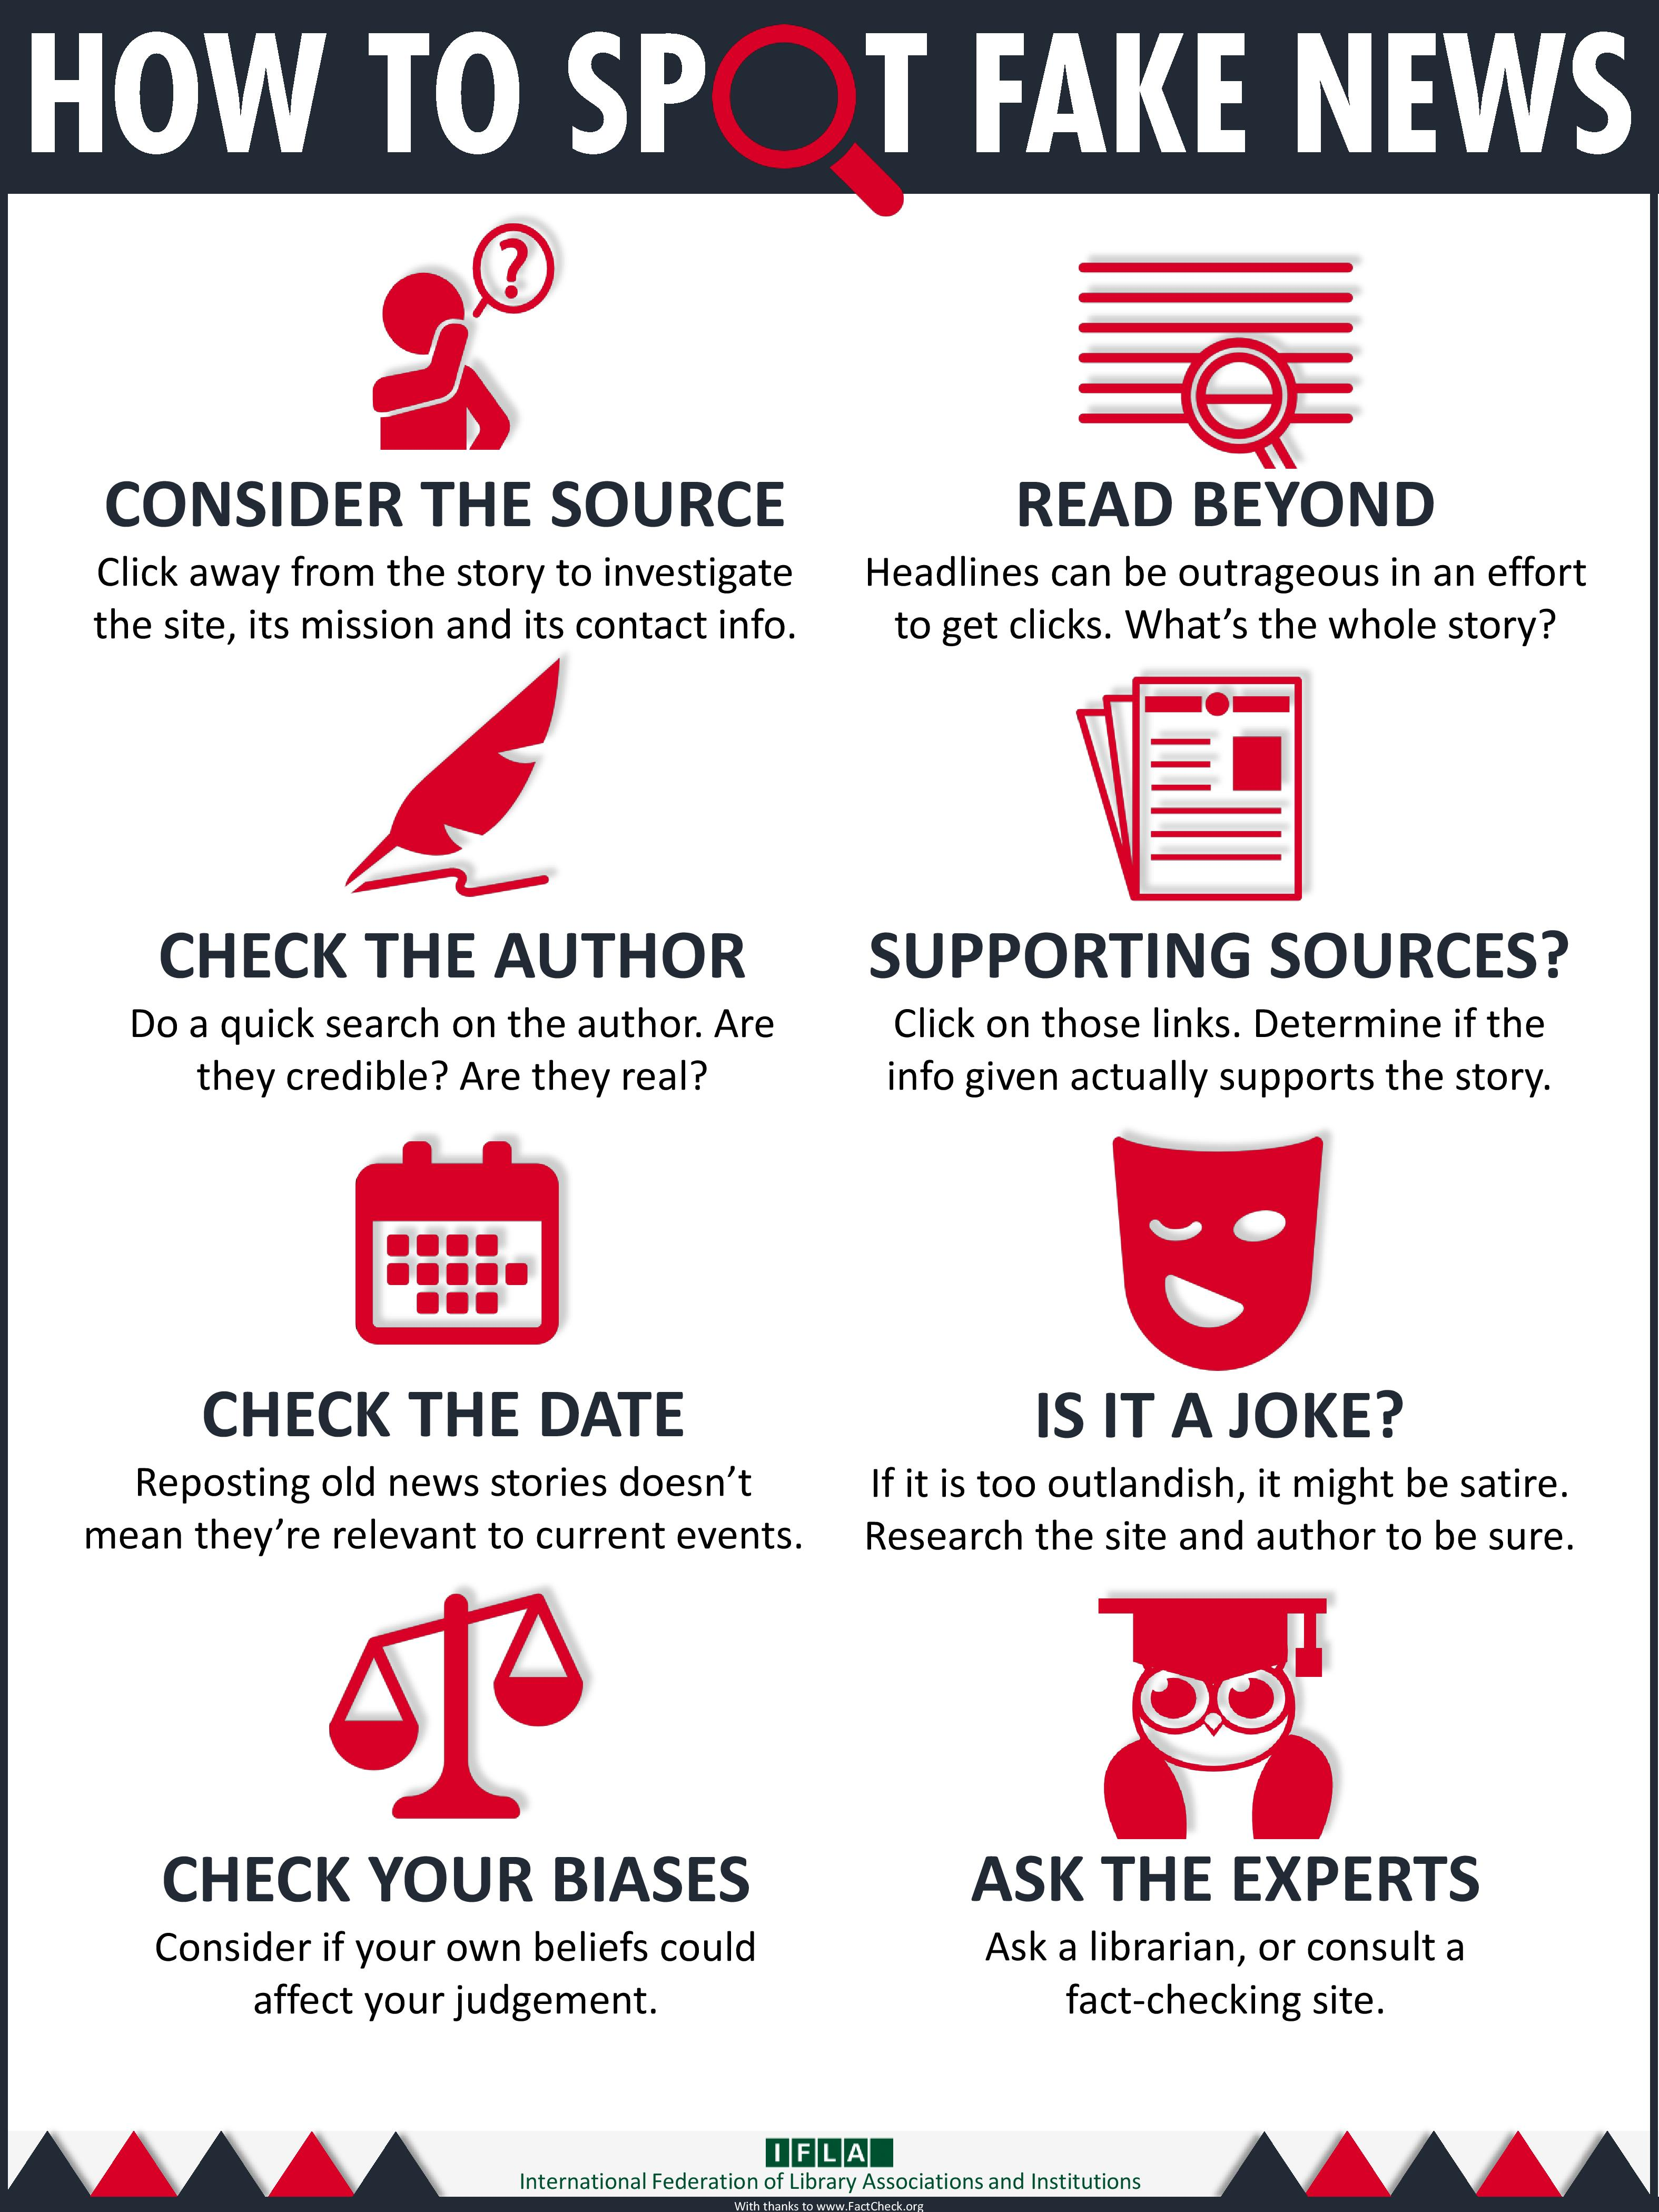 How to Spot Fake News. Consider the Source – Click away from the story to investigate the site, its mission and its contact info. Read Beyond – Headlines can be outrageous in an Effort to get clicks. What's the wholes story? Check the Author – Do a quick search on the author. Are they credible? Are they real? Supporting Sources? – Click on those links. Determine if the info given actually supports the story. Check the Date – Reposting old news stories doesn't mean they're relevant to current events. Is it a Joke? – If it is too outlandish, it might be satire. Research the site and author to be sure. Check your Biases – Consider if your own beliefs could affect your judgement. Ask the Experts – Ask a librarian, or consult a fact-checking site. Source: International Federation of Library Associations and Institutions.